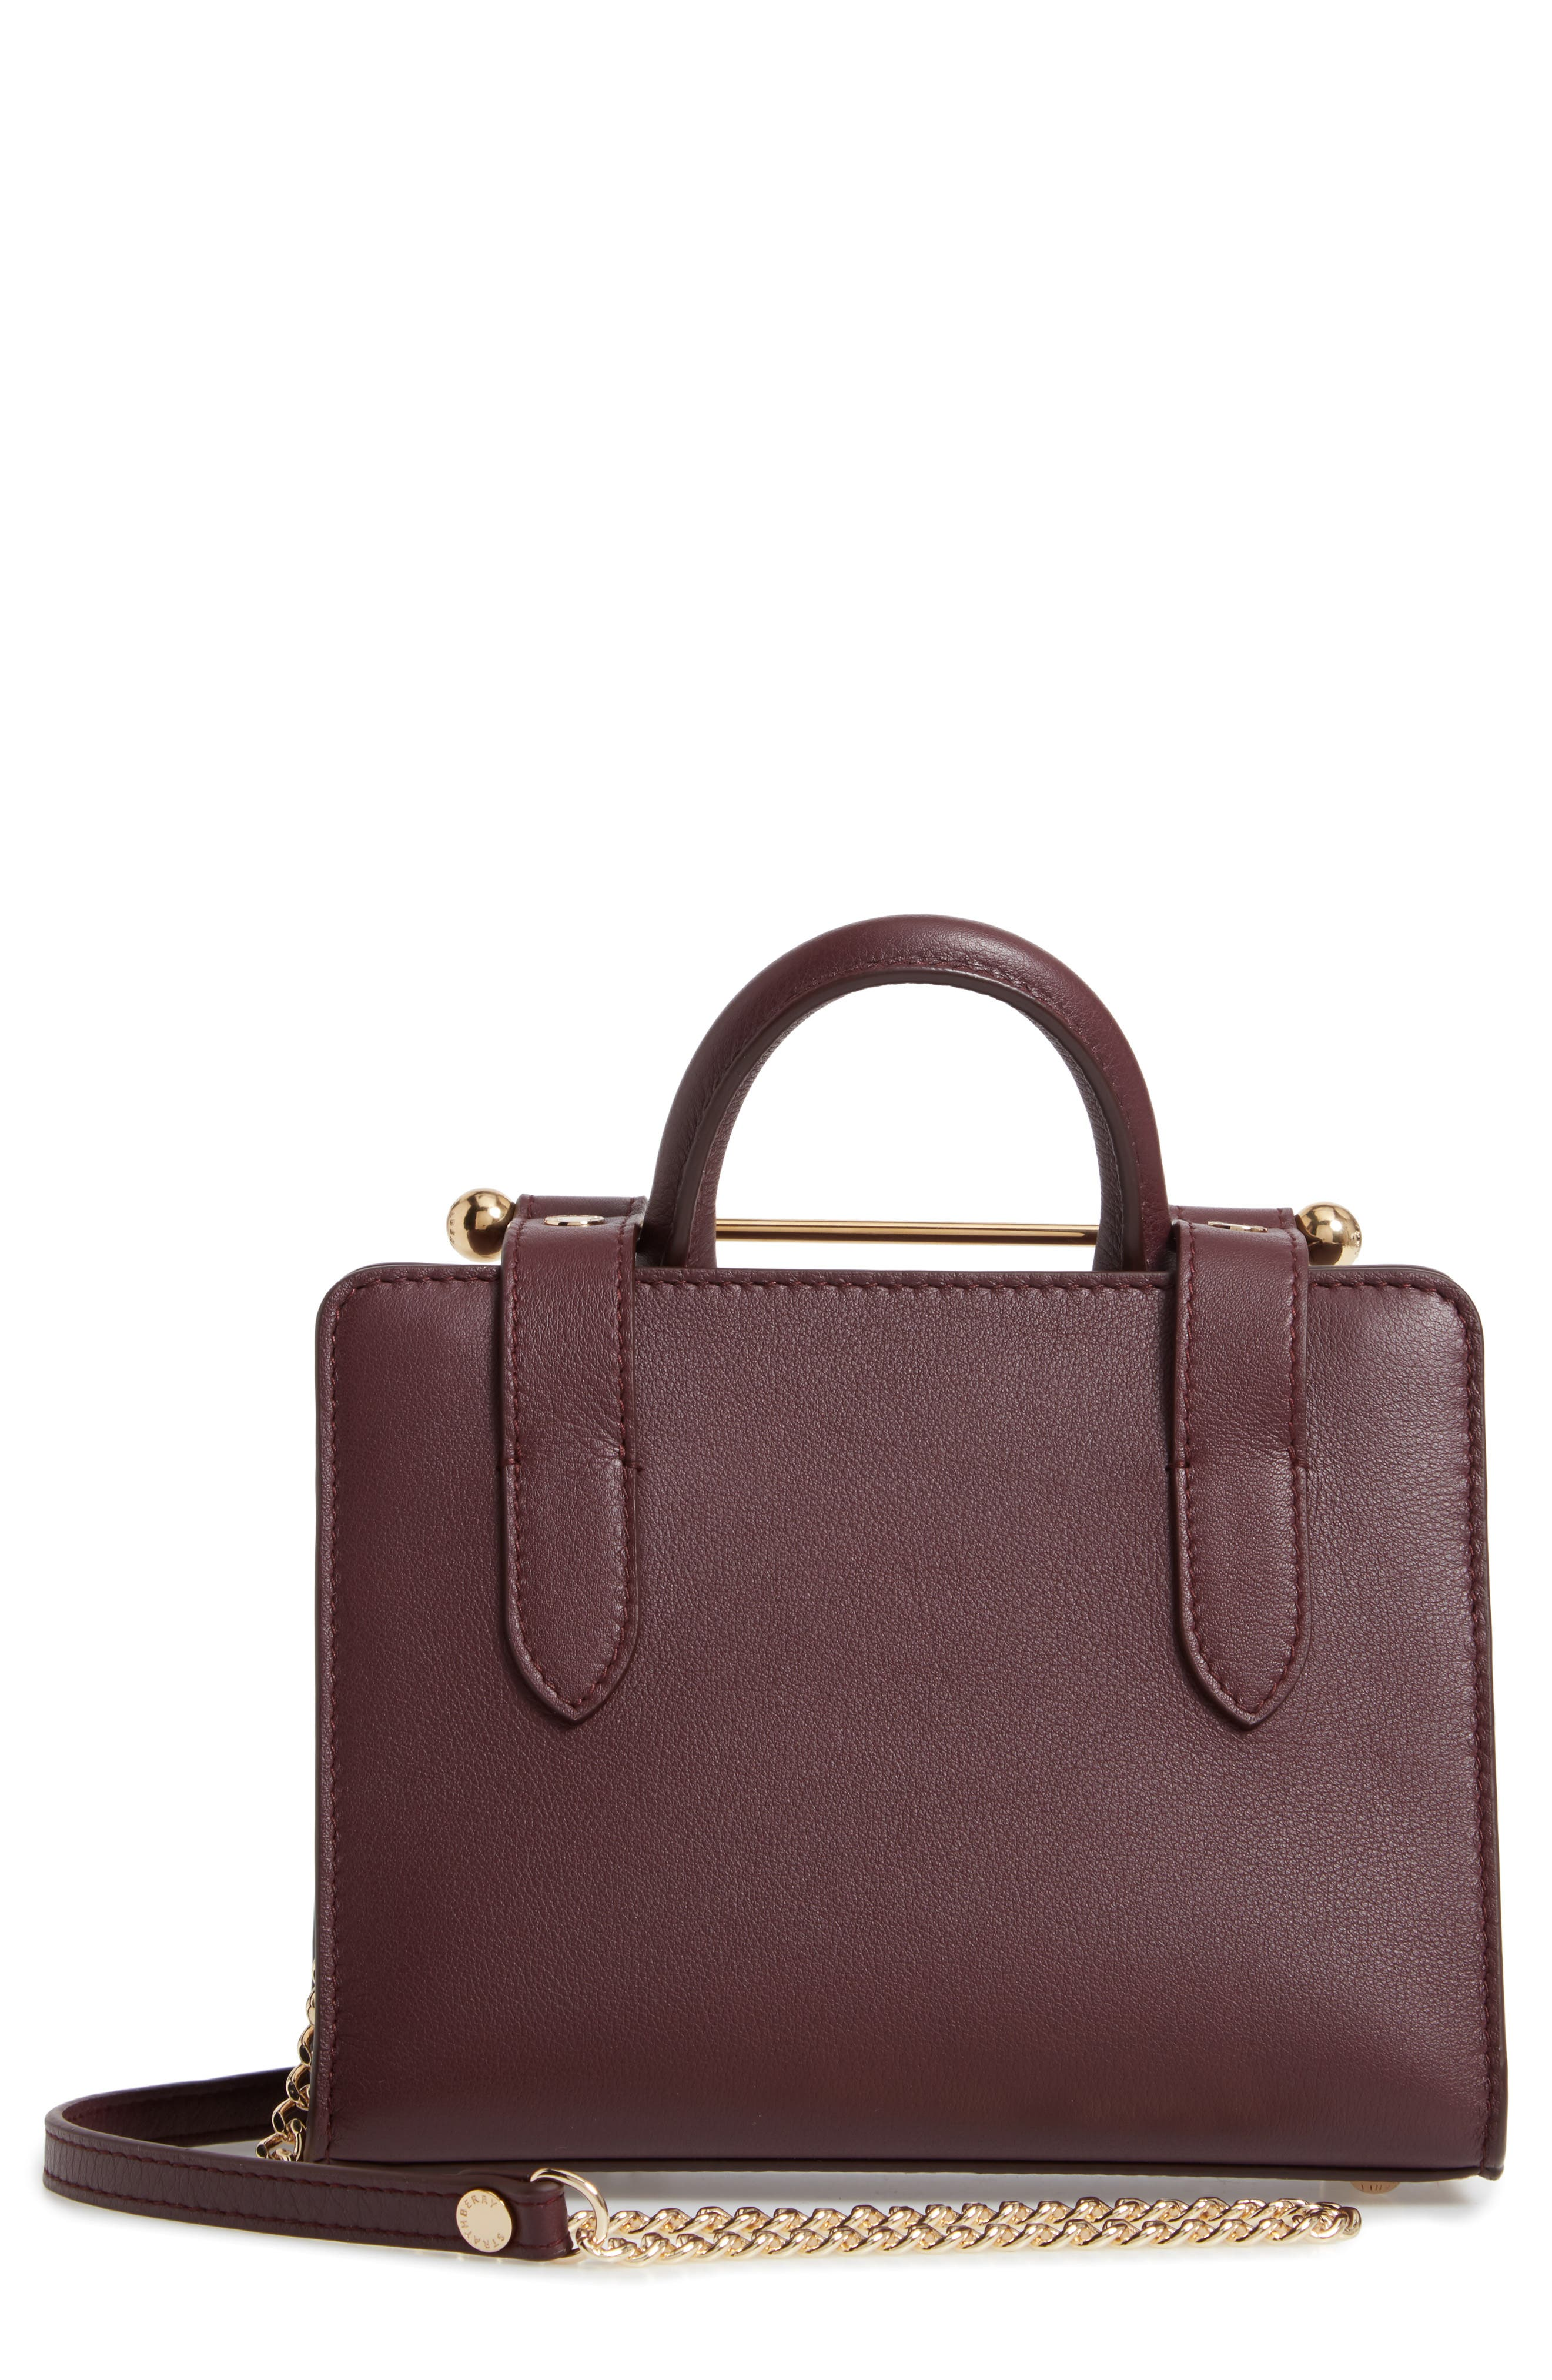 STRATHBERRY Nano Leather Tote - Burgundy